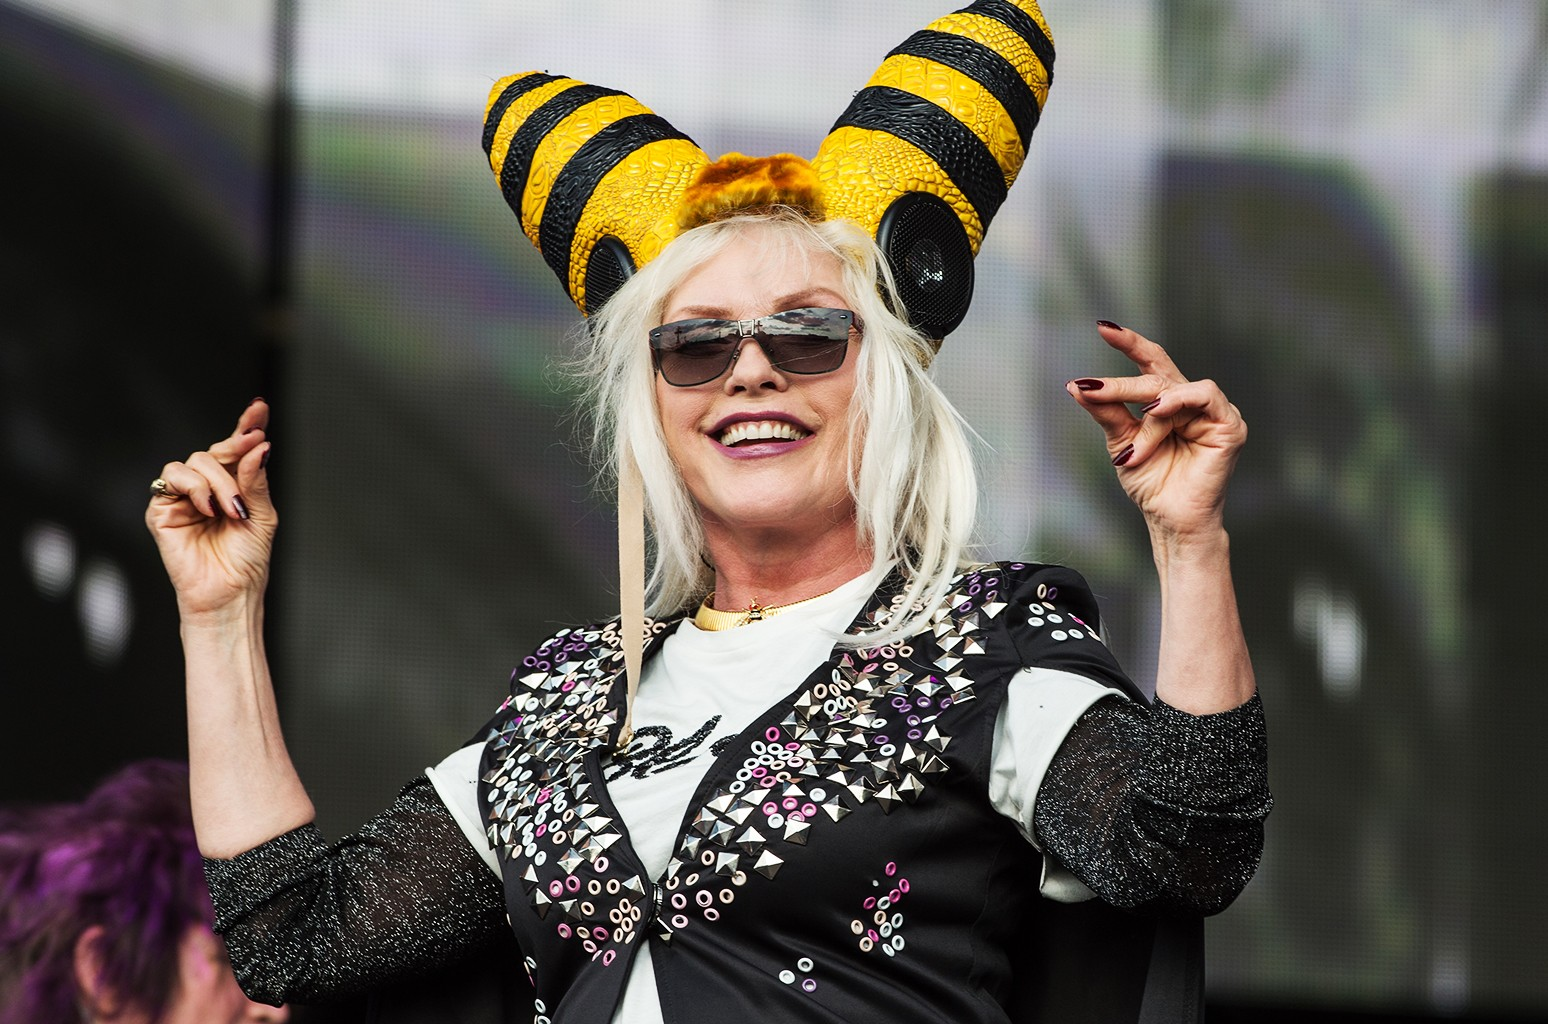 Debbie Harry of Blondie performs at Barclaycard British Summertime at Hyde Park on June 30, 2017 in London, England.